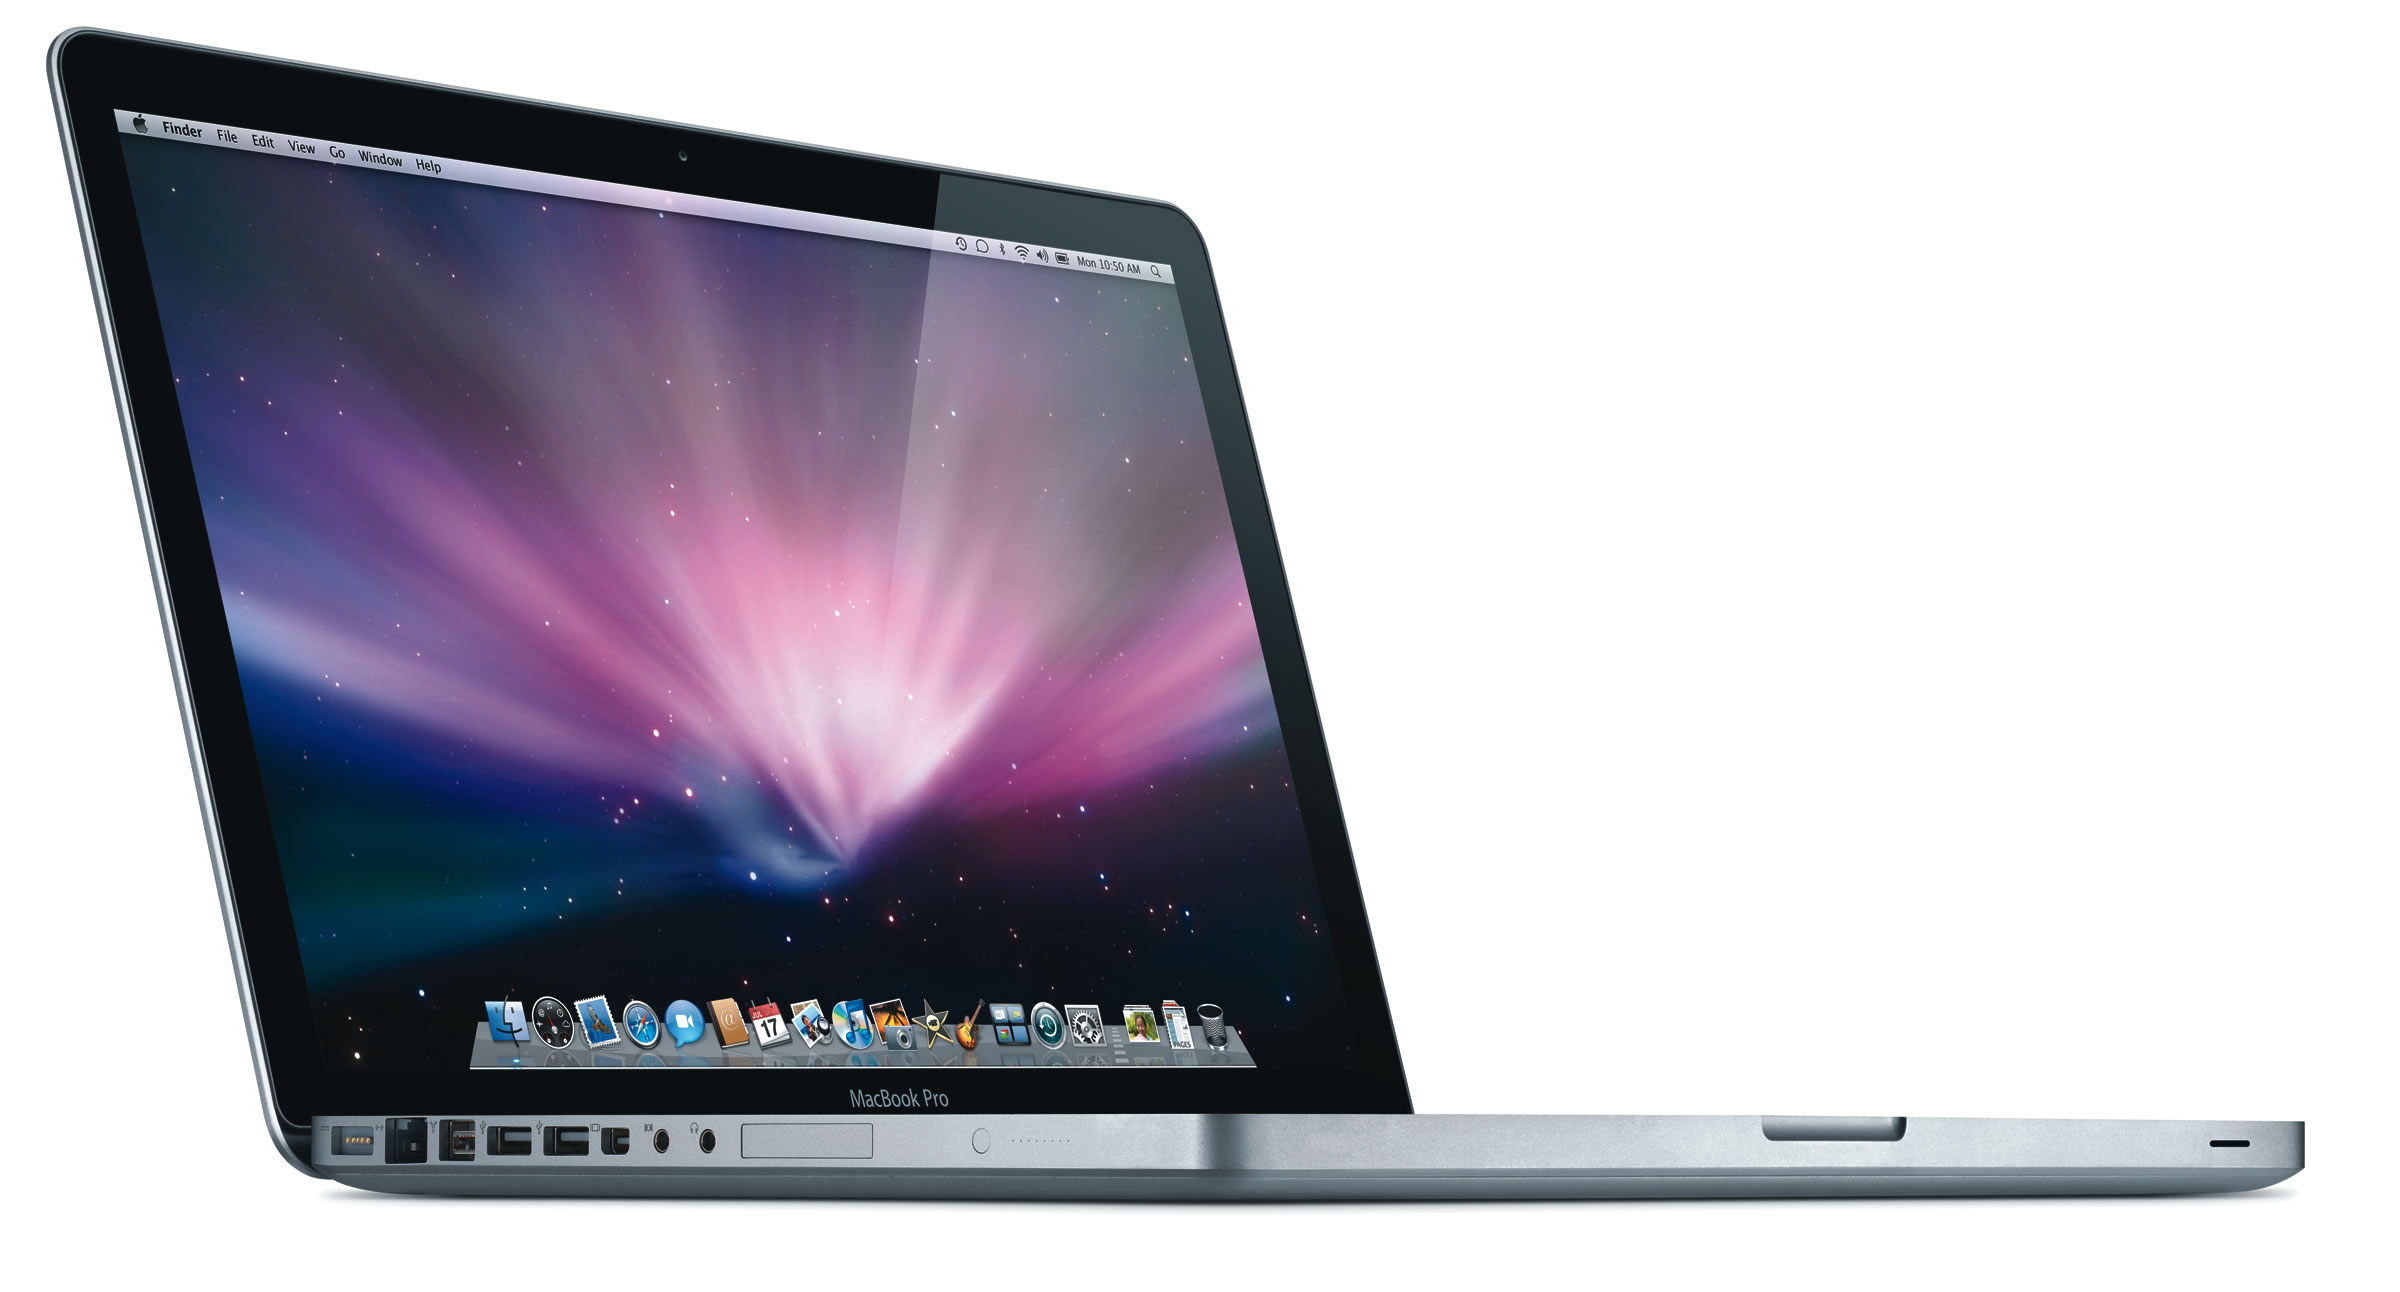 Macbook Pro MC375 nổi bật